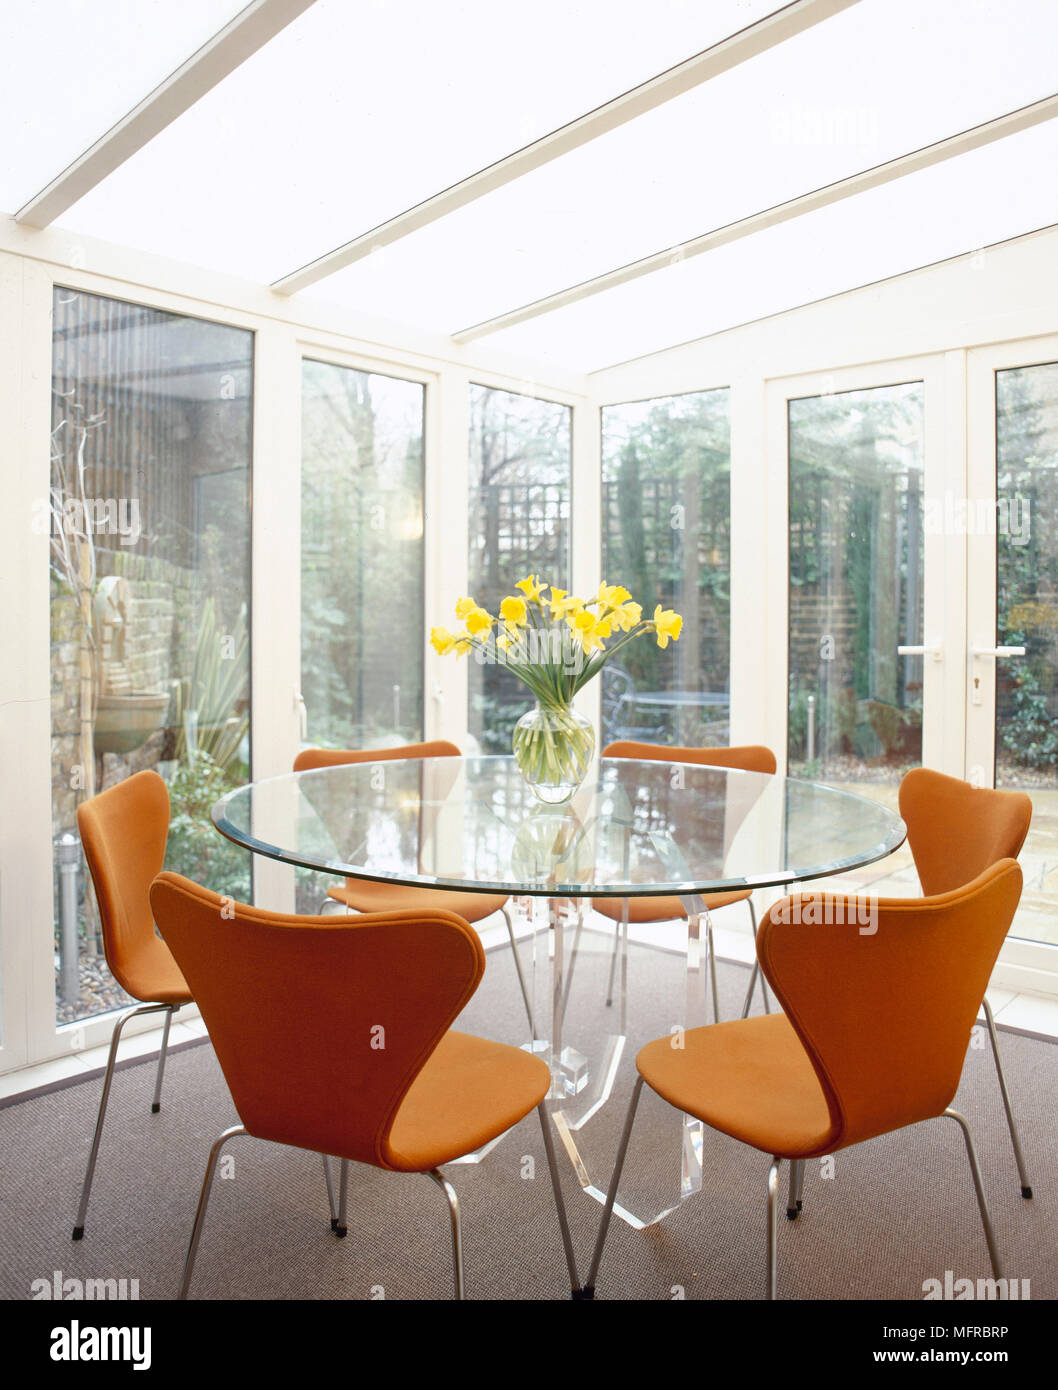 Modern Conservatory Dining Area With Glass Walls And Roof, Round Glass Table,  And Butterfly Back Chairs.